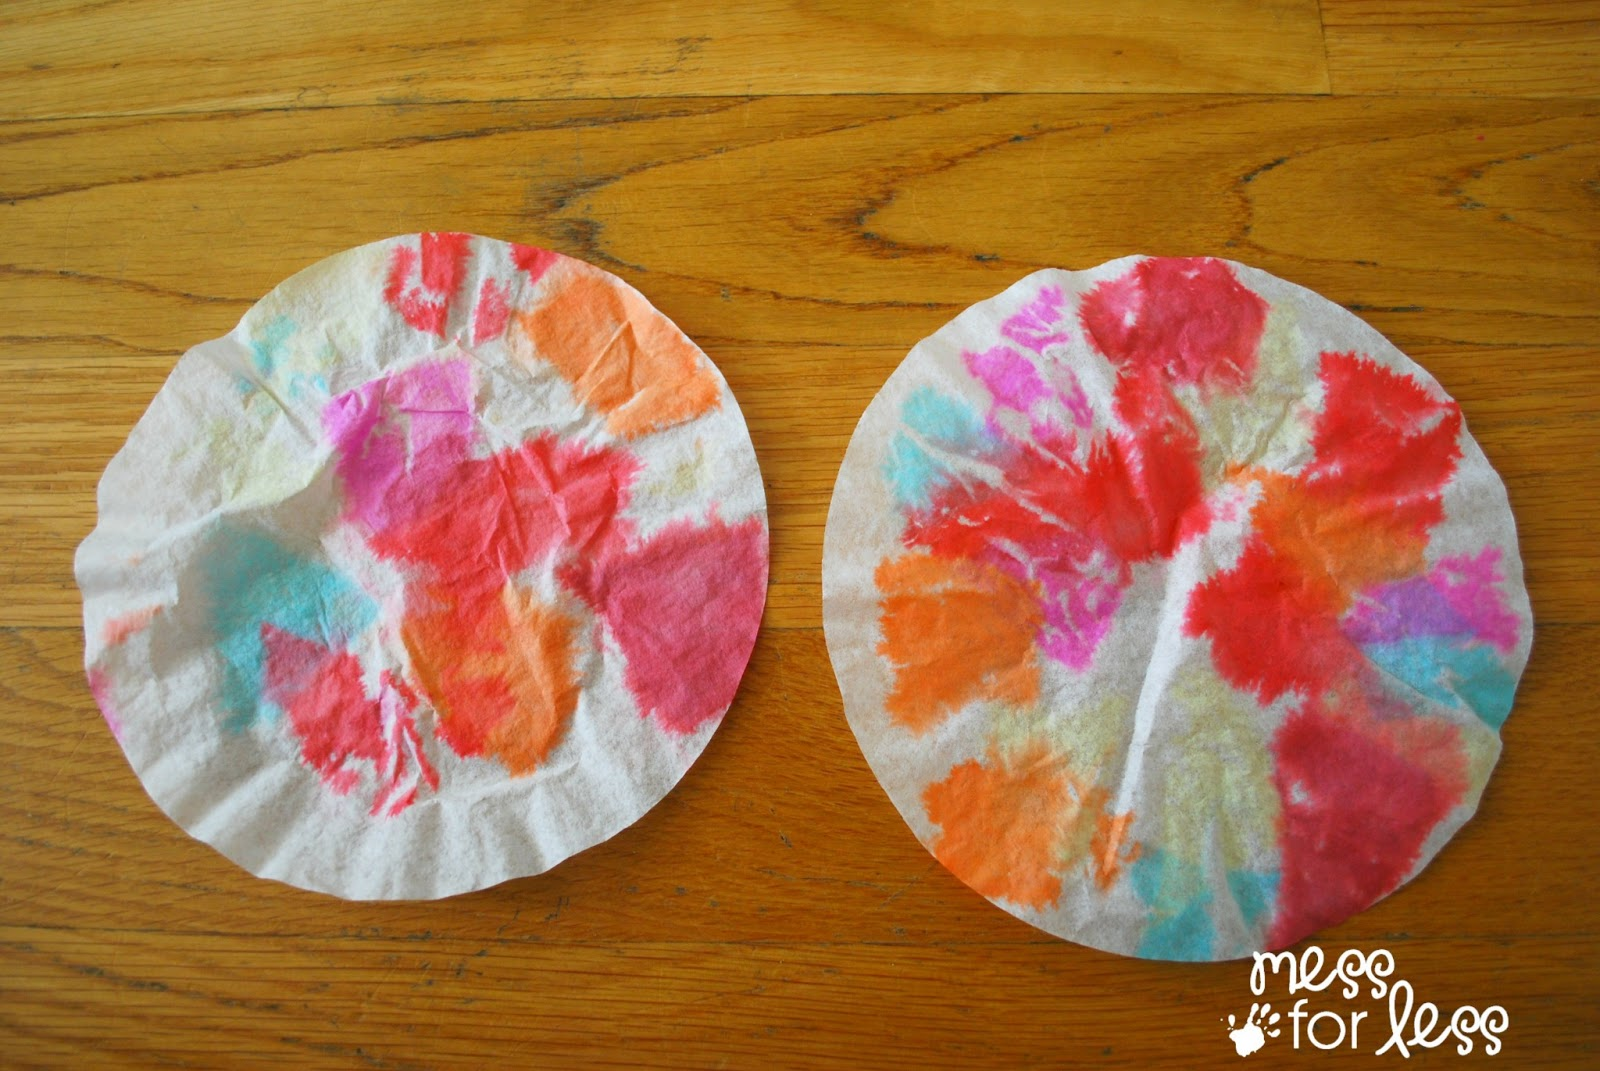 Coffee Filter Flowers made with Tissue Paper